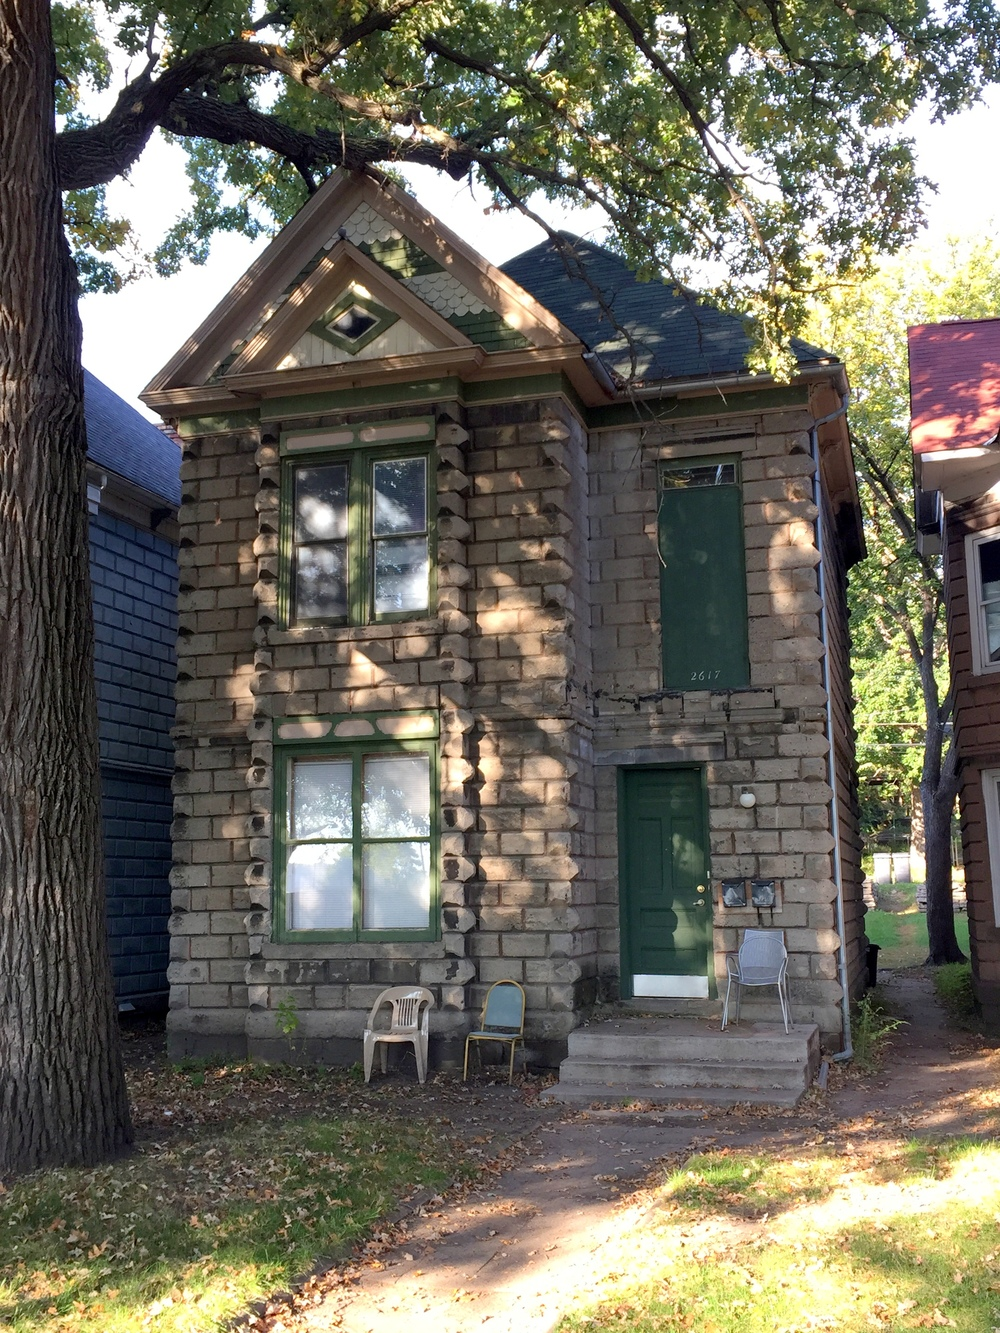 A  single family home  built by the Union Stone and Building Company, currently recognized as local historic landmarks by the City of Minneapolis. Learn more at the  Minneapolis Heritage Preservation Commission 's website.